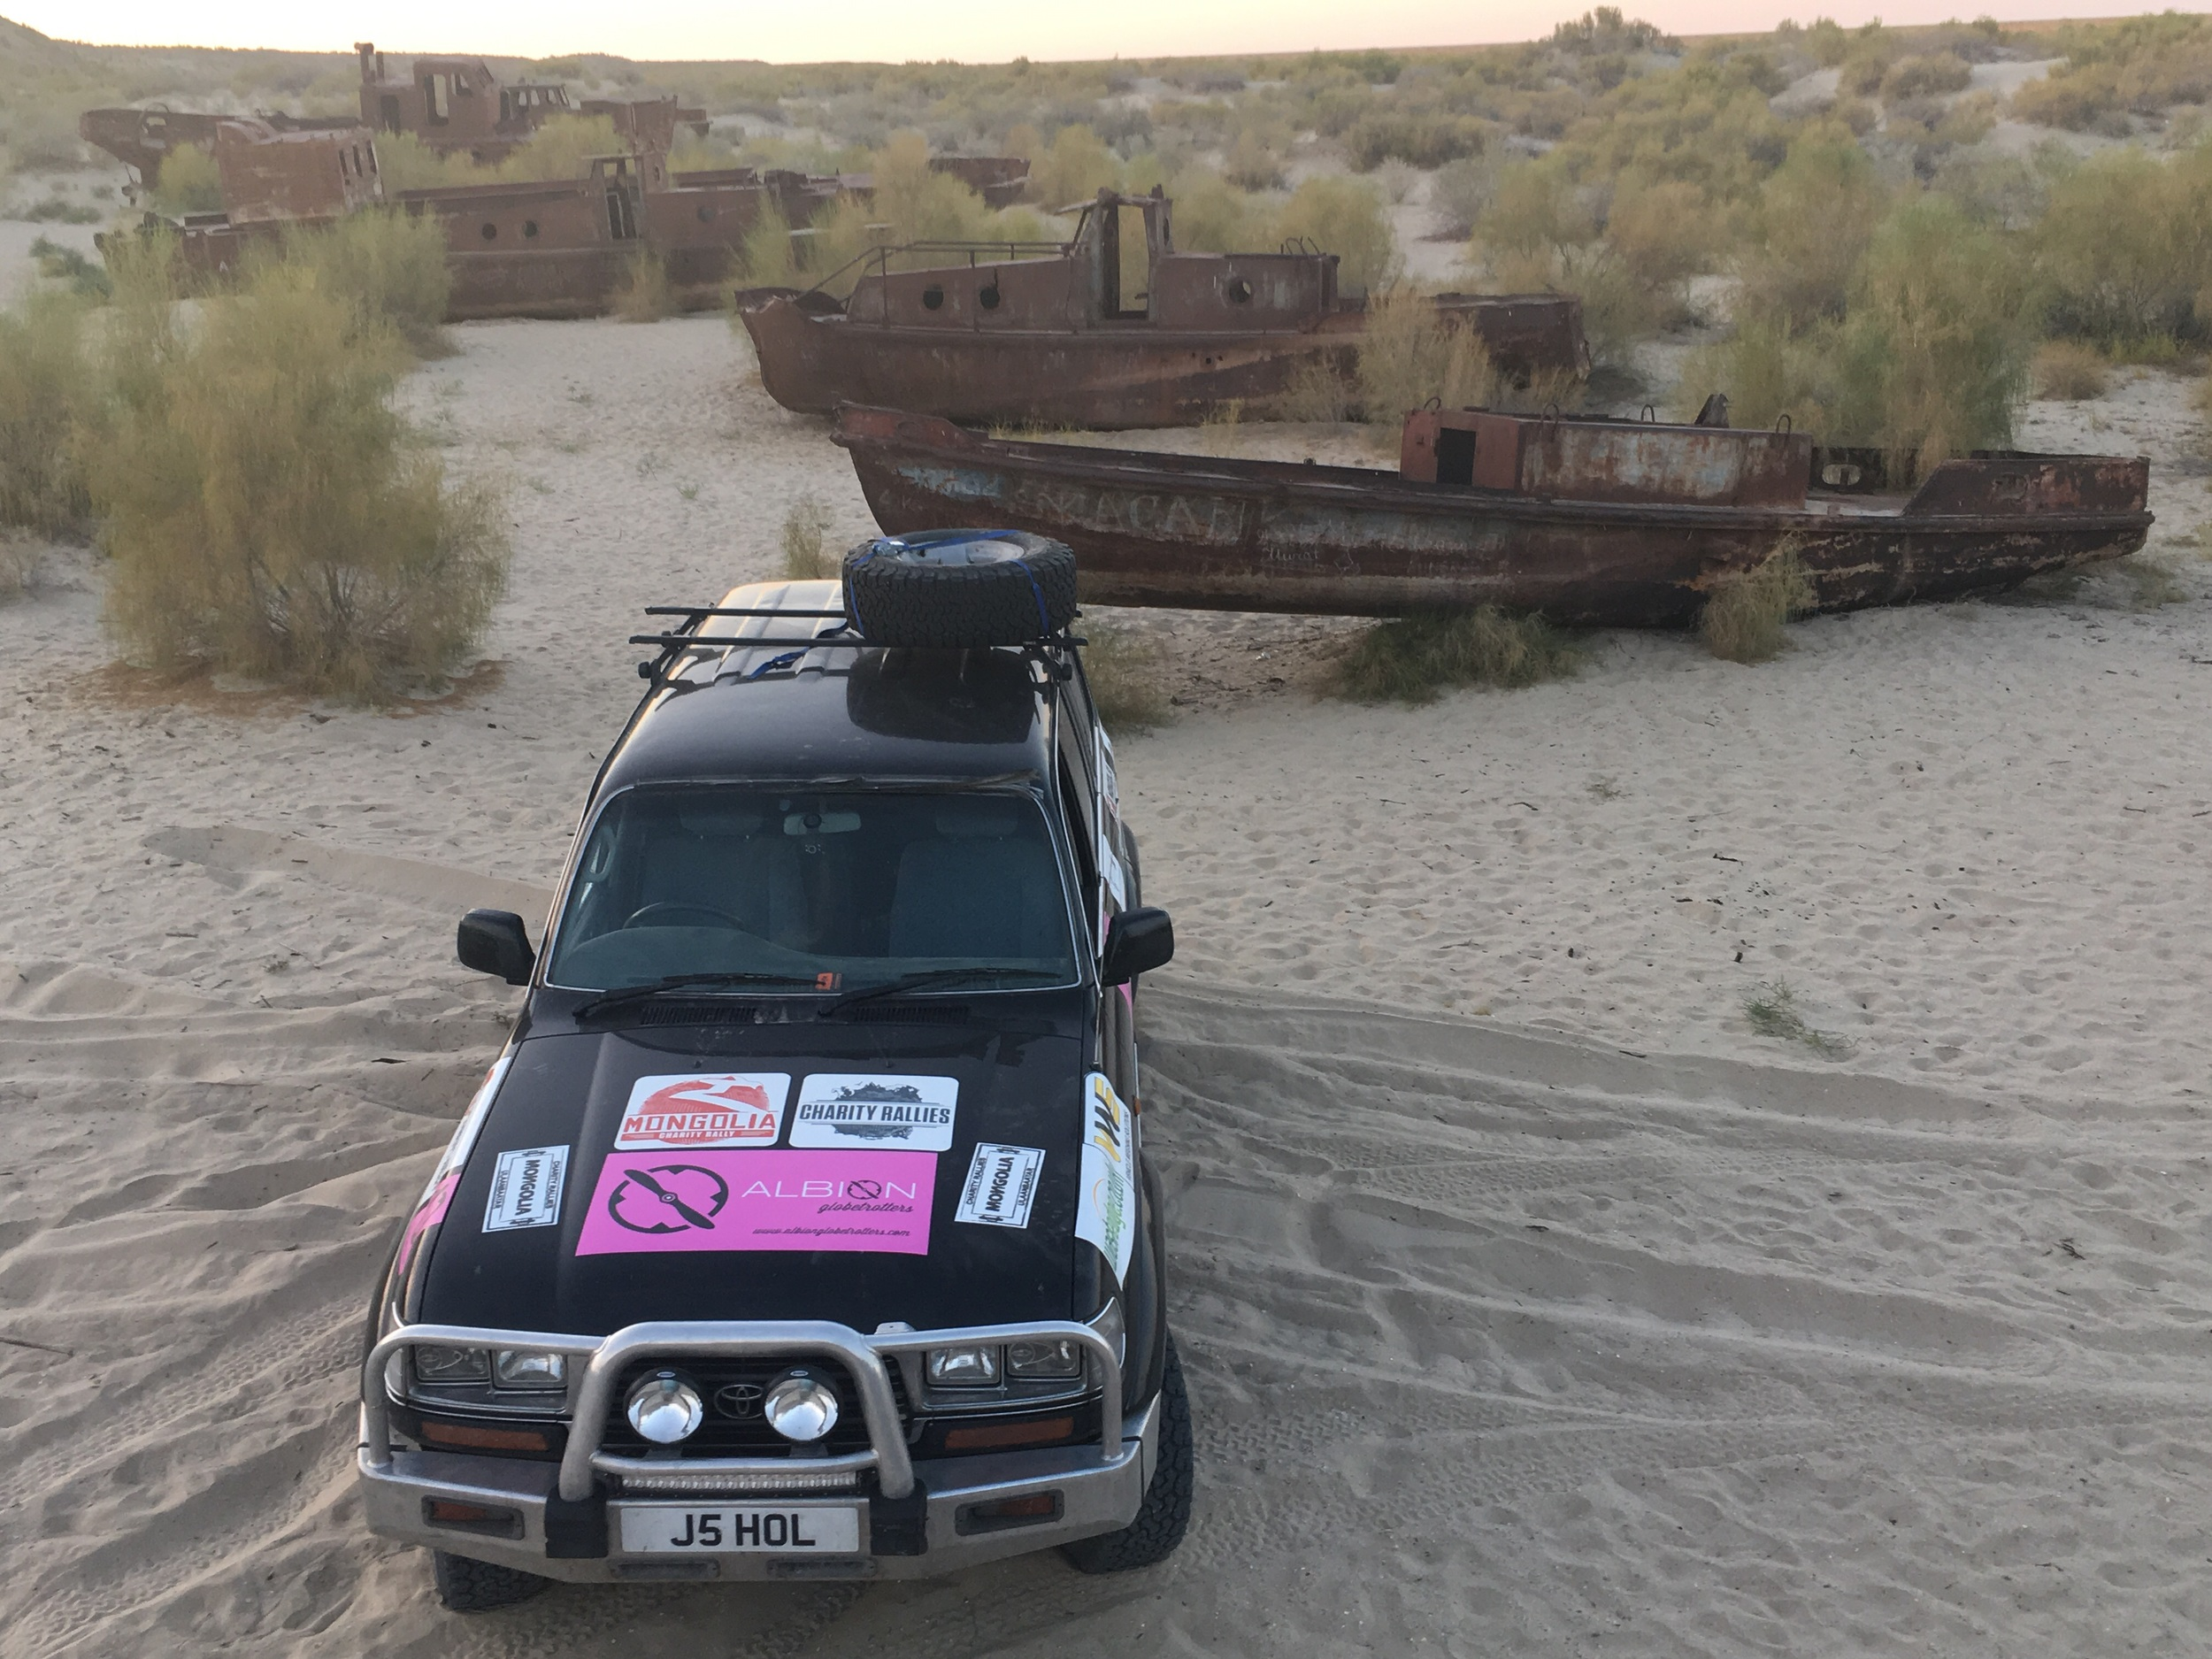 Our car on what used to be the seabed of the Aral Sea.